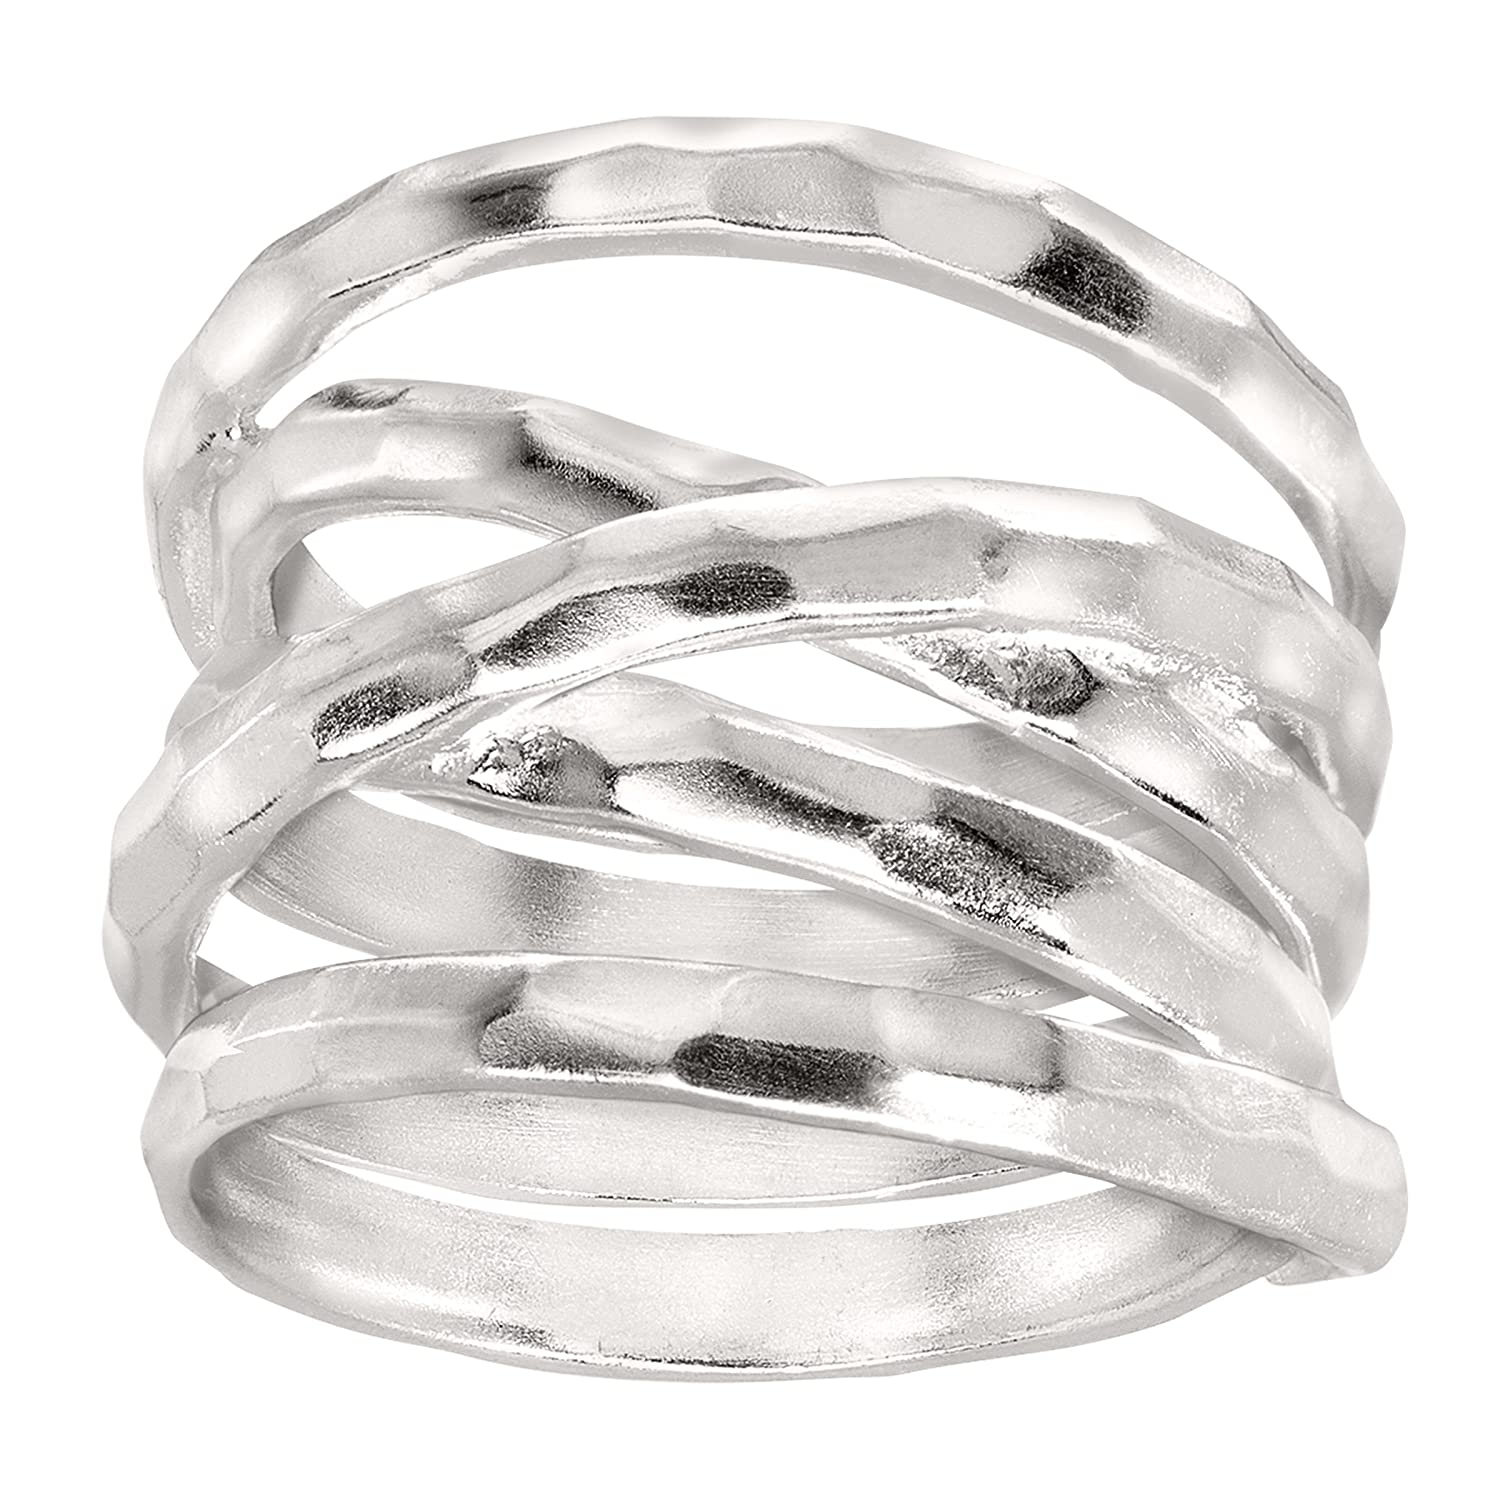 Silpada 'Wrapped Up' Ring in Sterling Silver Richline Group R3475P